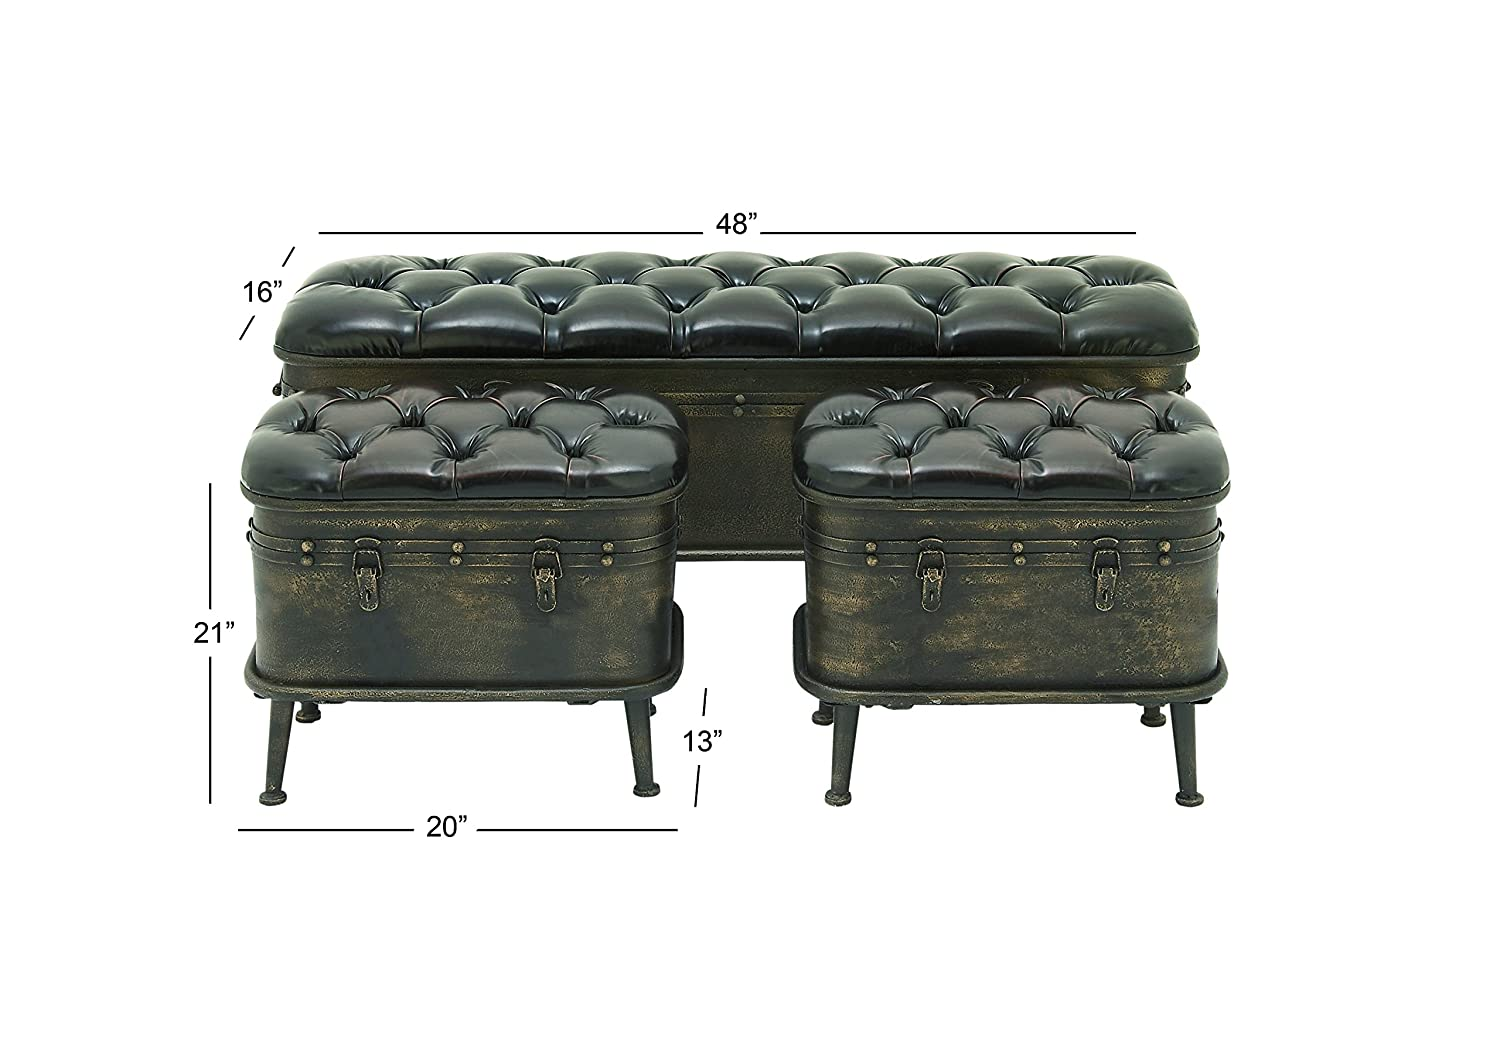 Deco 79 57783 Vintage Dark Brown Iron Leather Cushioned Storage Benches with Iron Feet Set of 3